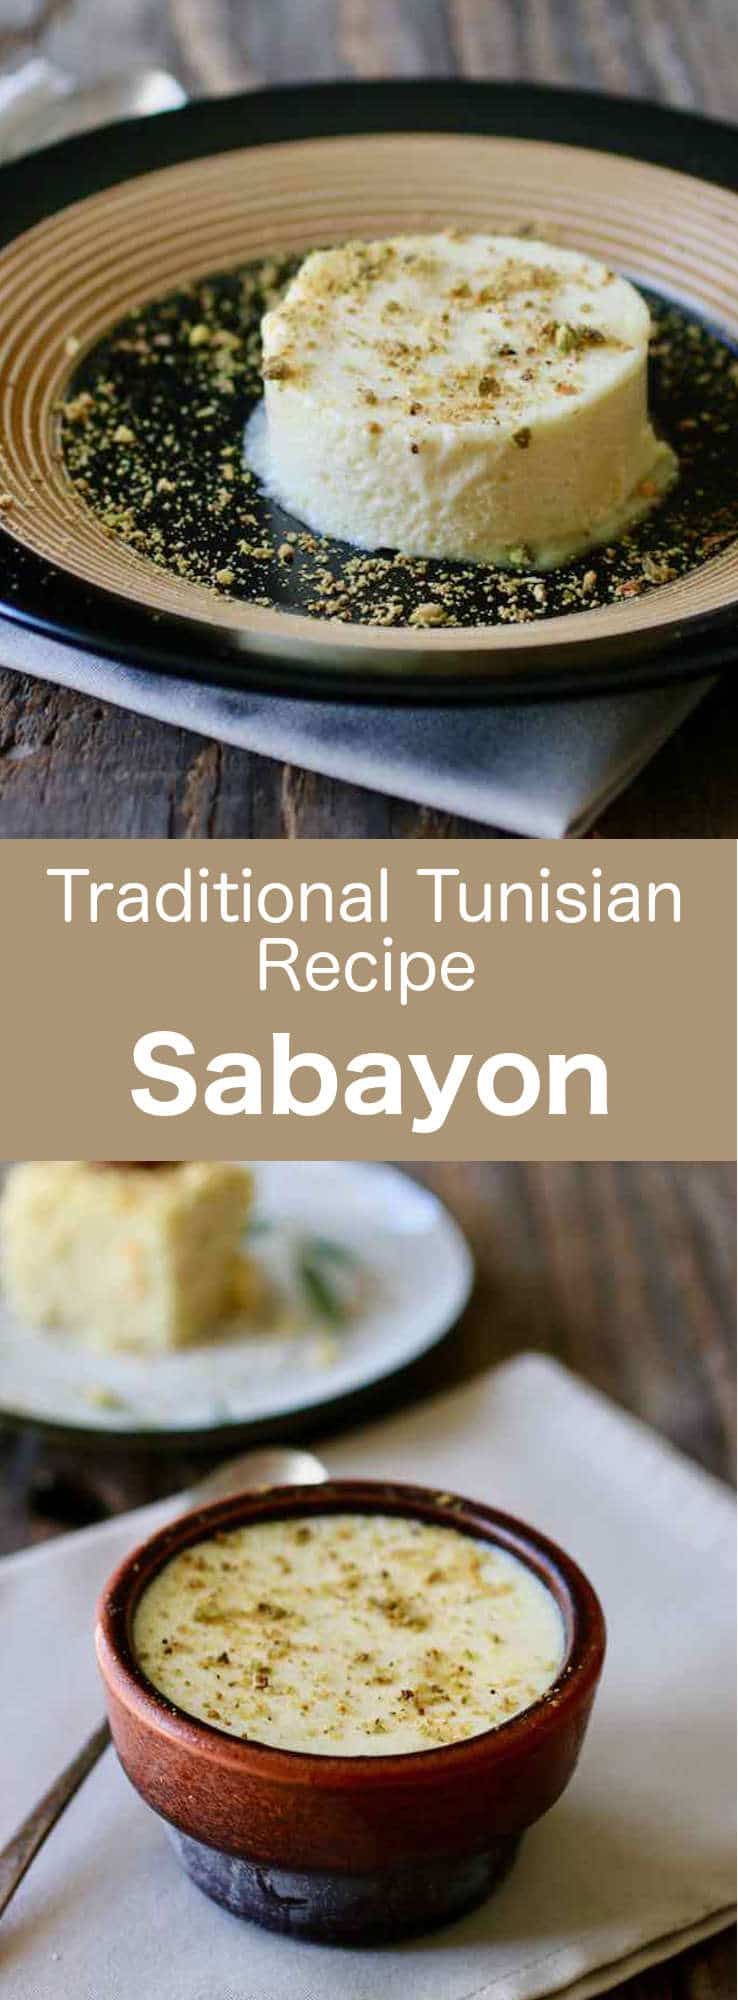 Tunisian sabayon is a delicious egg-based ice cream, flavored with orange blossom water, that is an adaptation of the original Italian version. #Tunisia #Tunisian #TunisianCuisine #TunisianRecipe #NorthAfricanCuisine #NorthAfricanRecipe #NorthAfrica #Maghreb #MaghrebCuisine #IceCream #NonDairyRecipe #ParveRecipe #WorldCuisine #196flavors